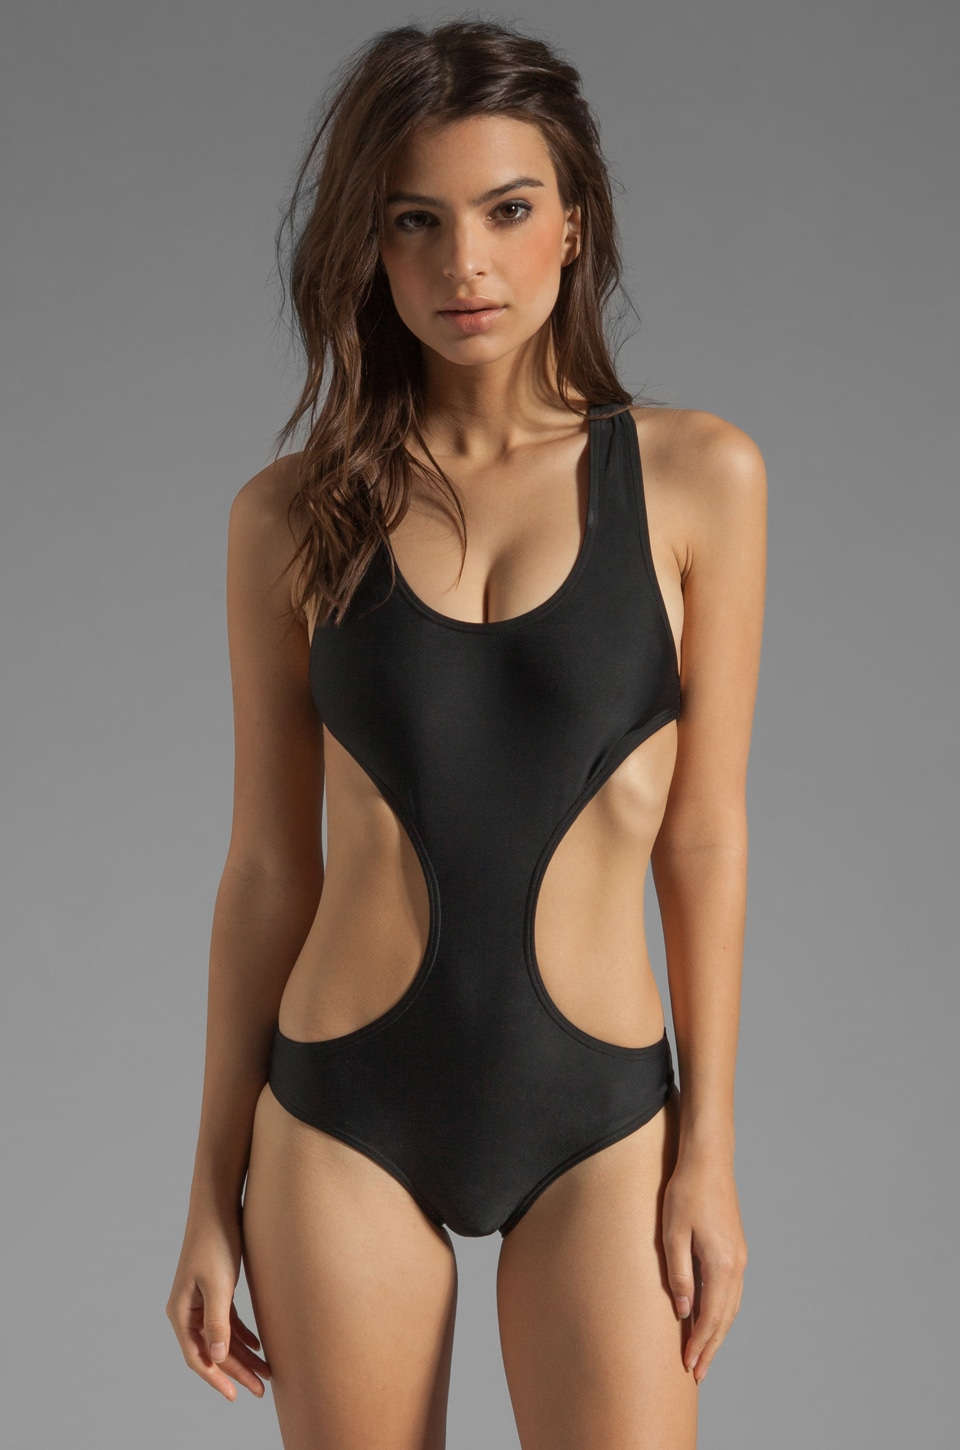 BEACH RIOT The Daydreamer One-piece in Black